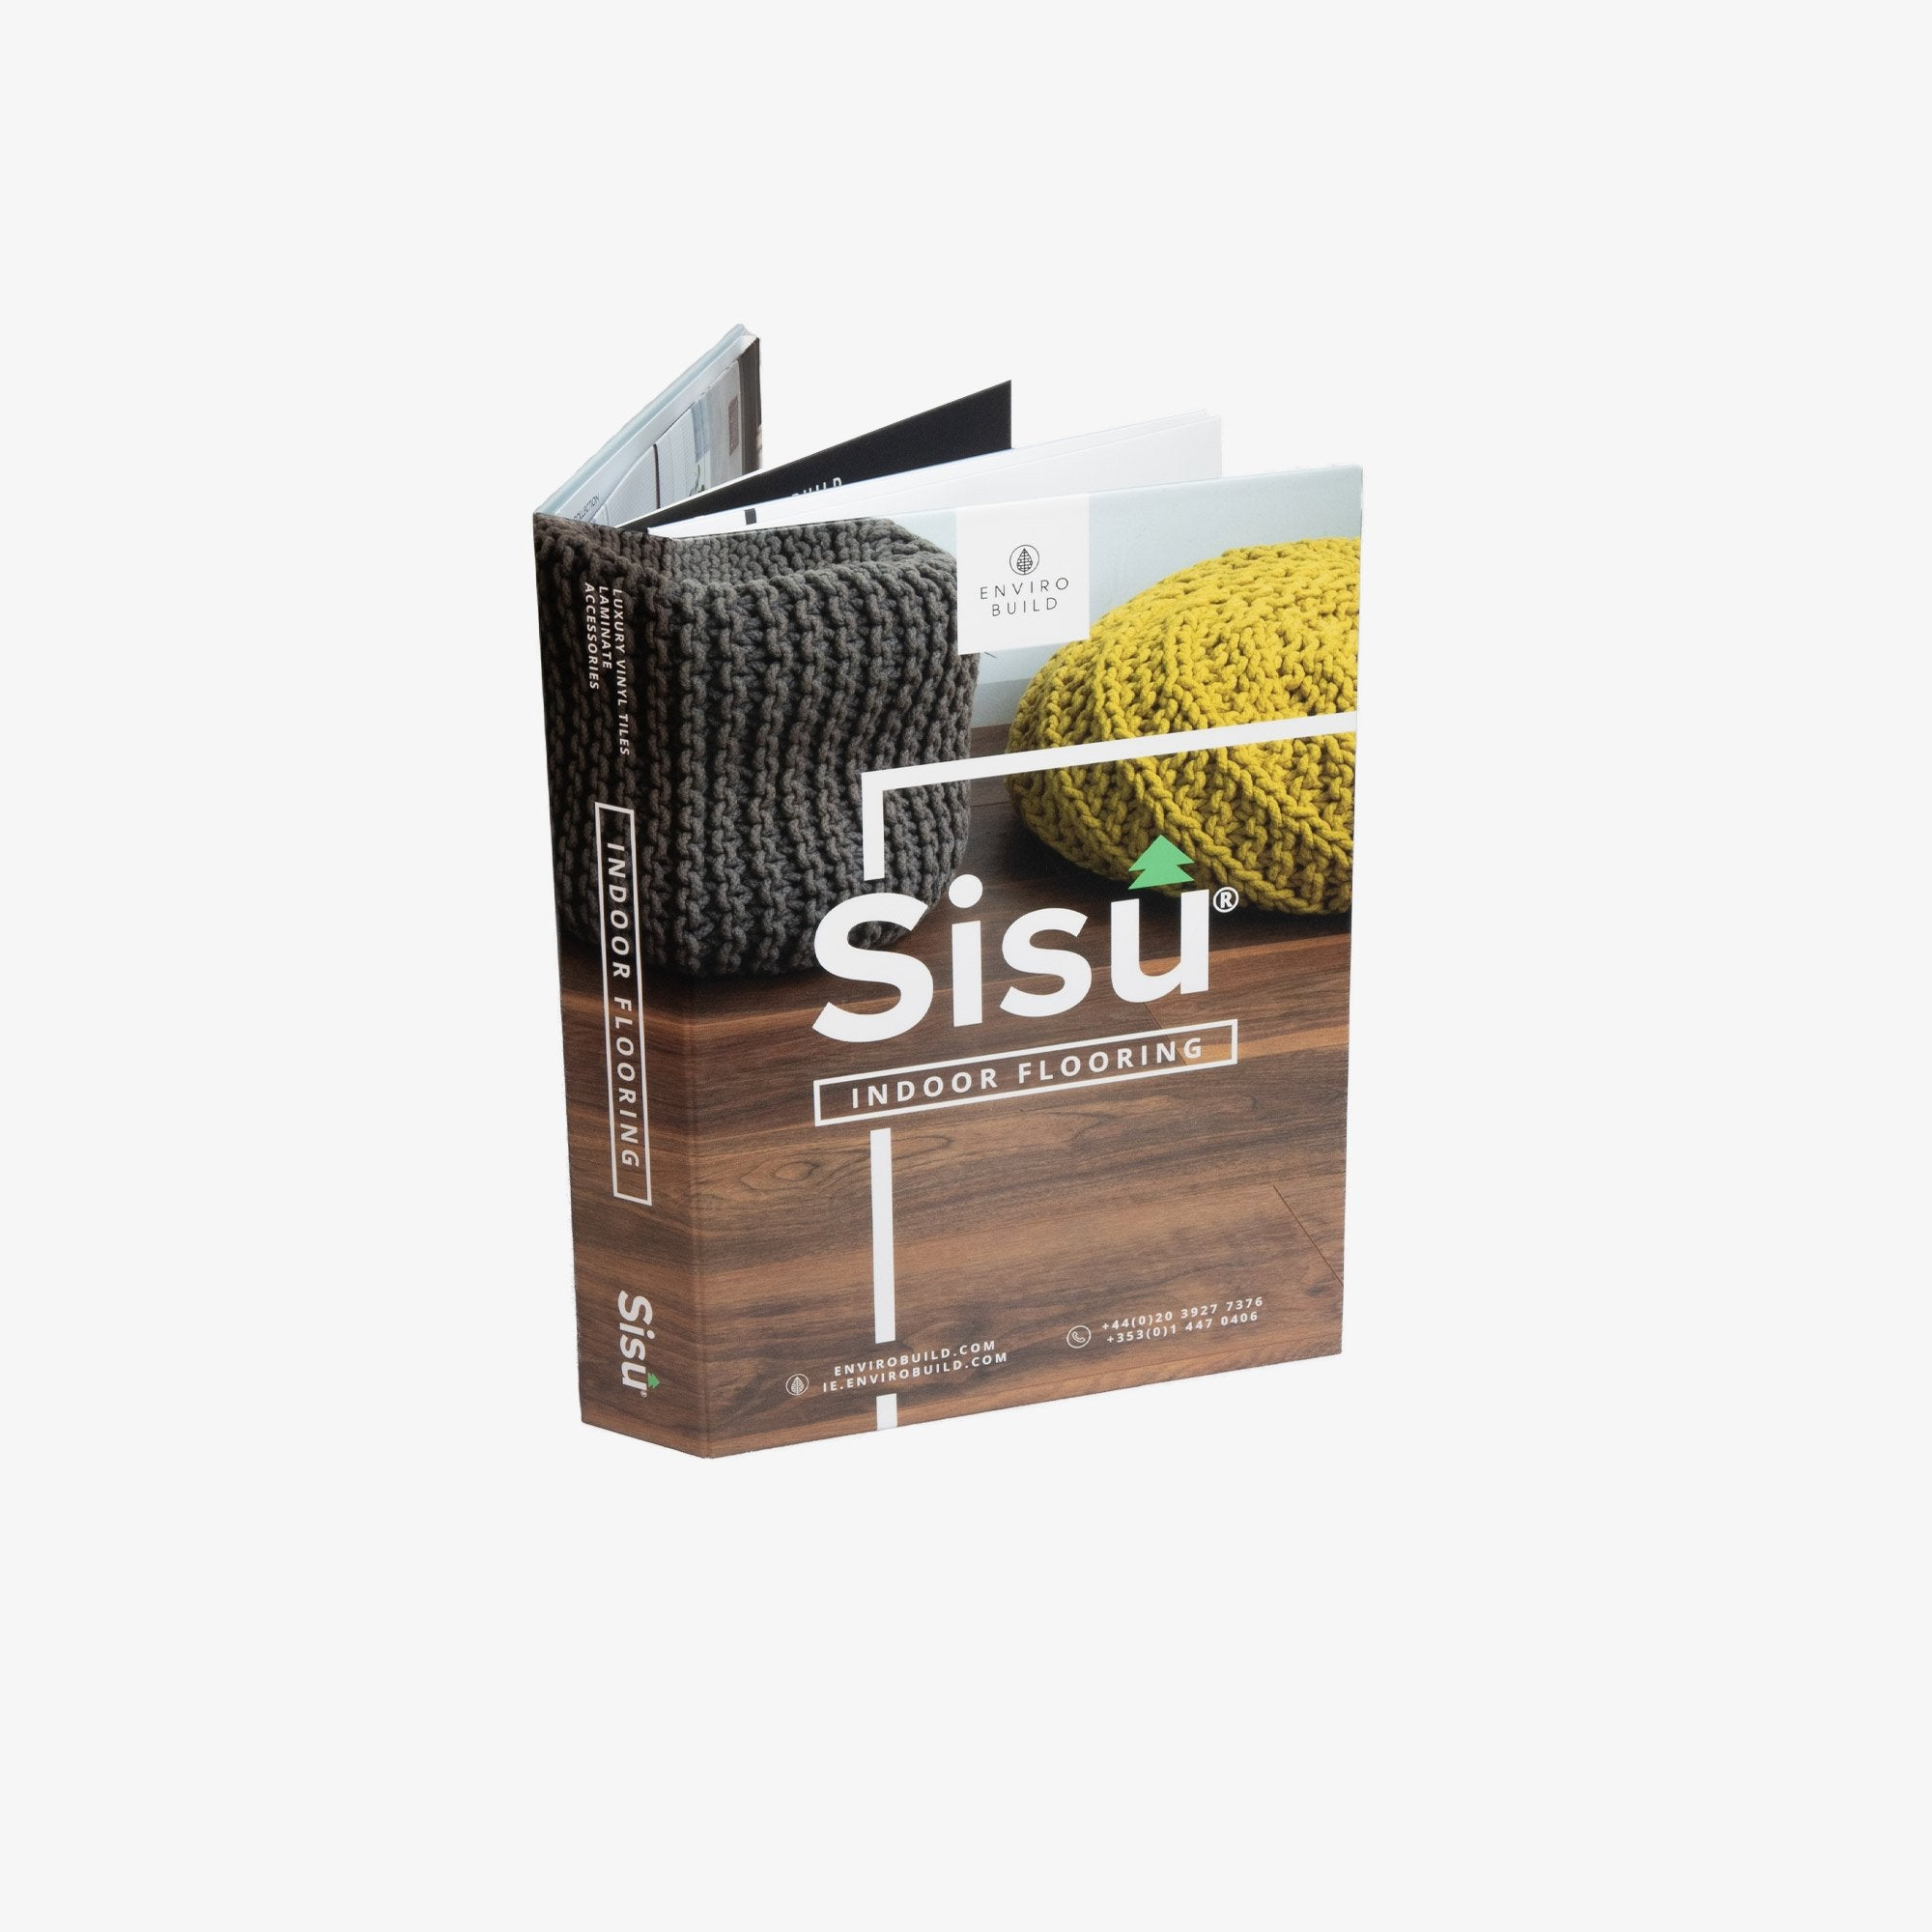 Sisu Indoor Flooring | Trade Pack